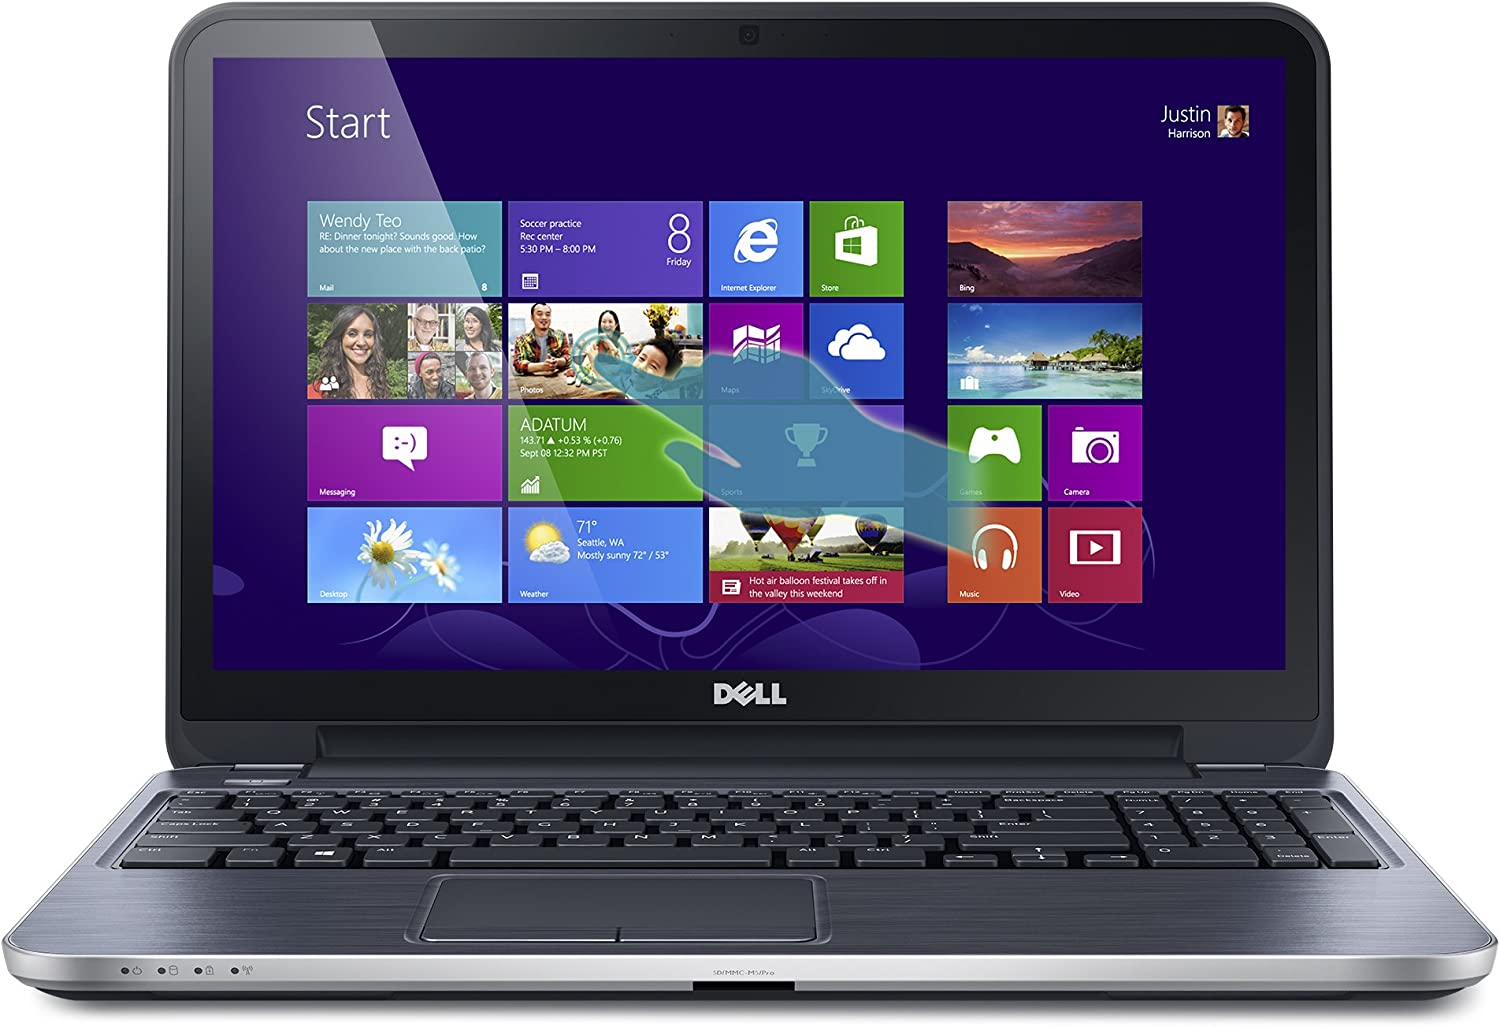 Dell Inspiron i15RMT-5124sLV 15.6-Inch Touchscreen Laptop (1.6 GHz Intel Core i5-4200U Processor, 6GB DDR3L, 500GB HDD, Windows 8) Moon SIlver [Discontinued By Manufacturer]